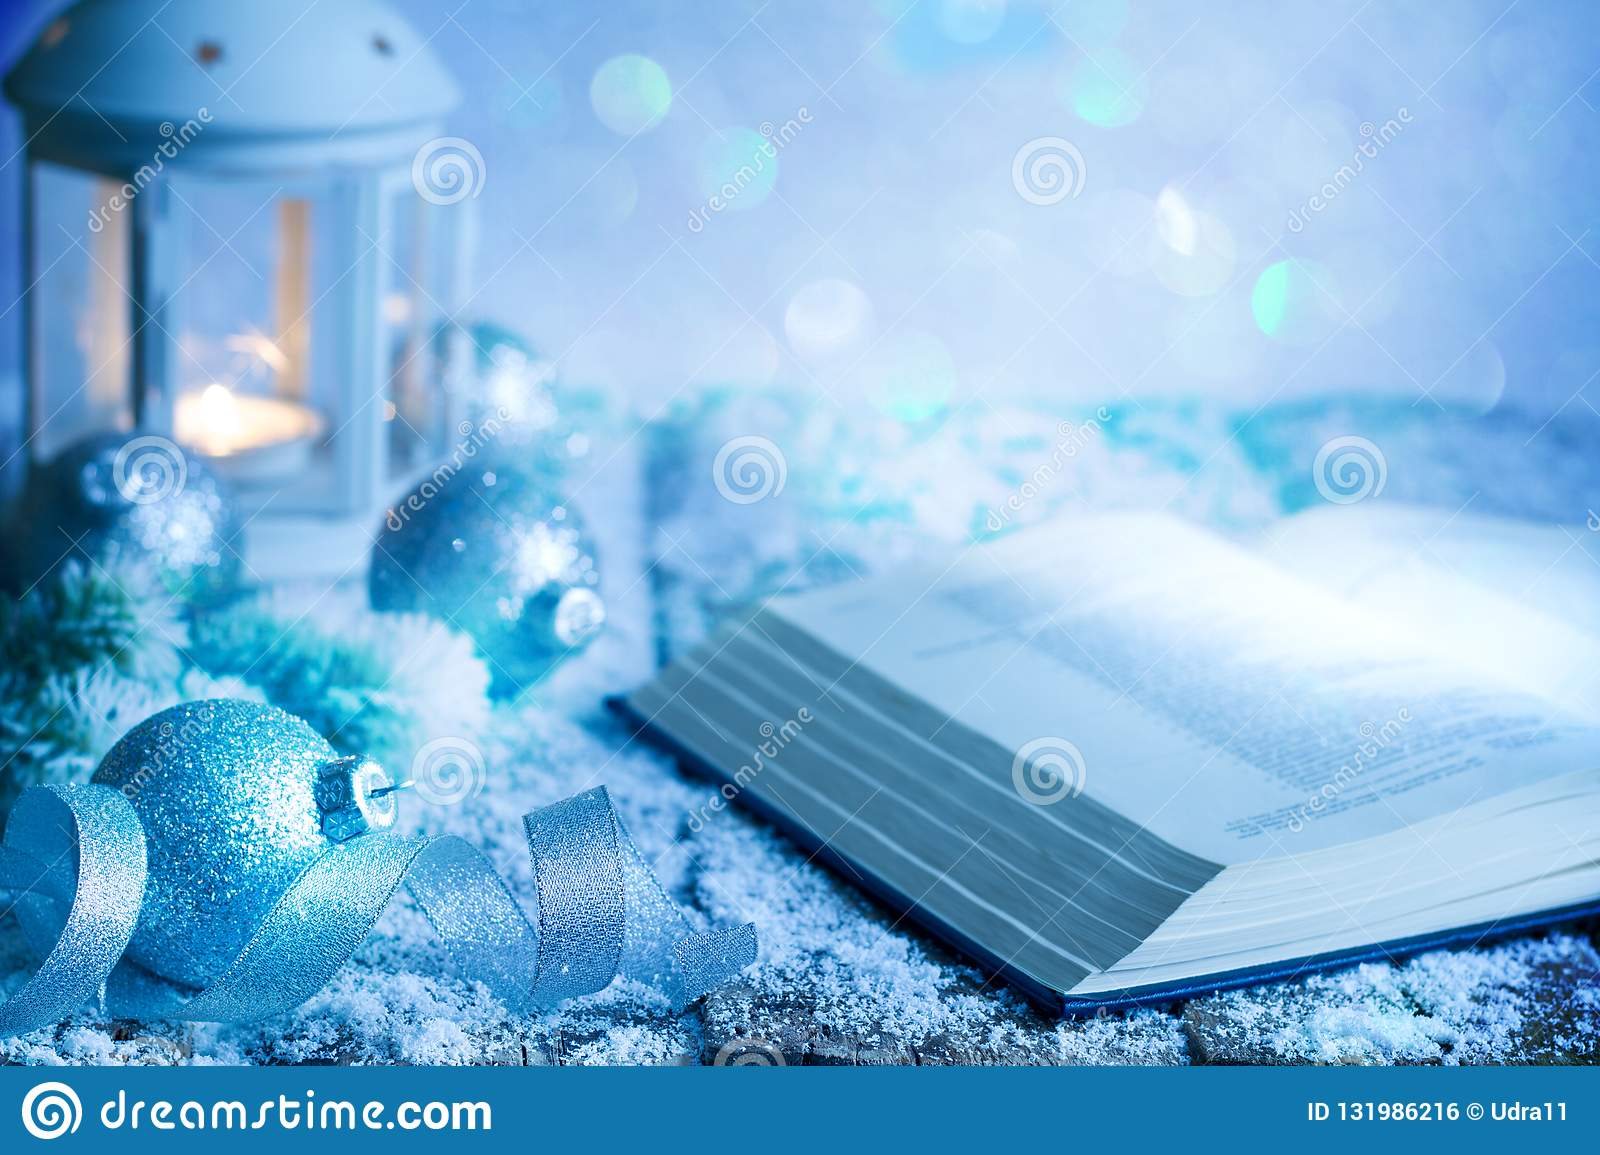 Christmas abstract decoration ornament background with bible baubles and lantern on empty table in blue